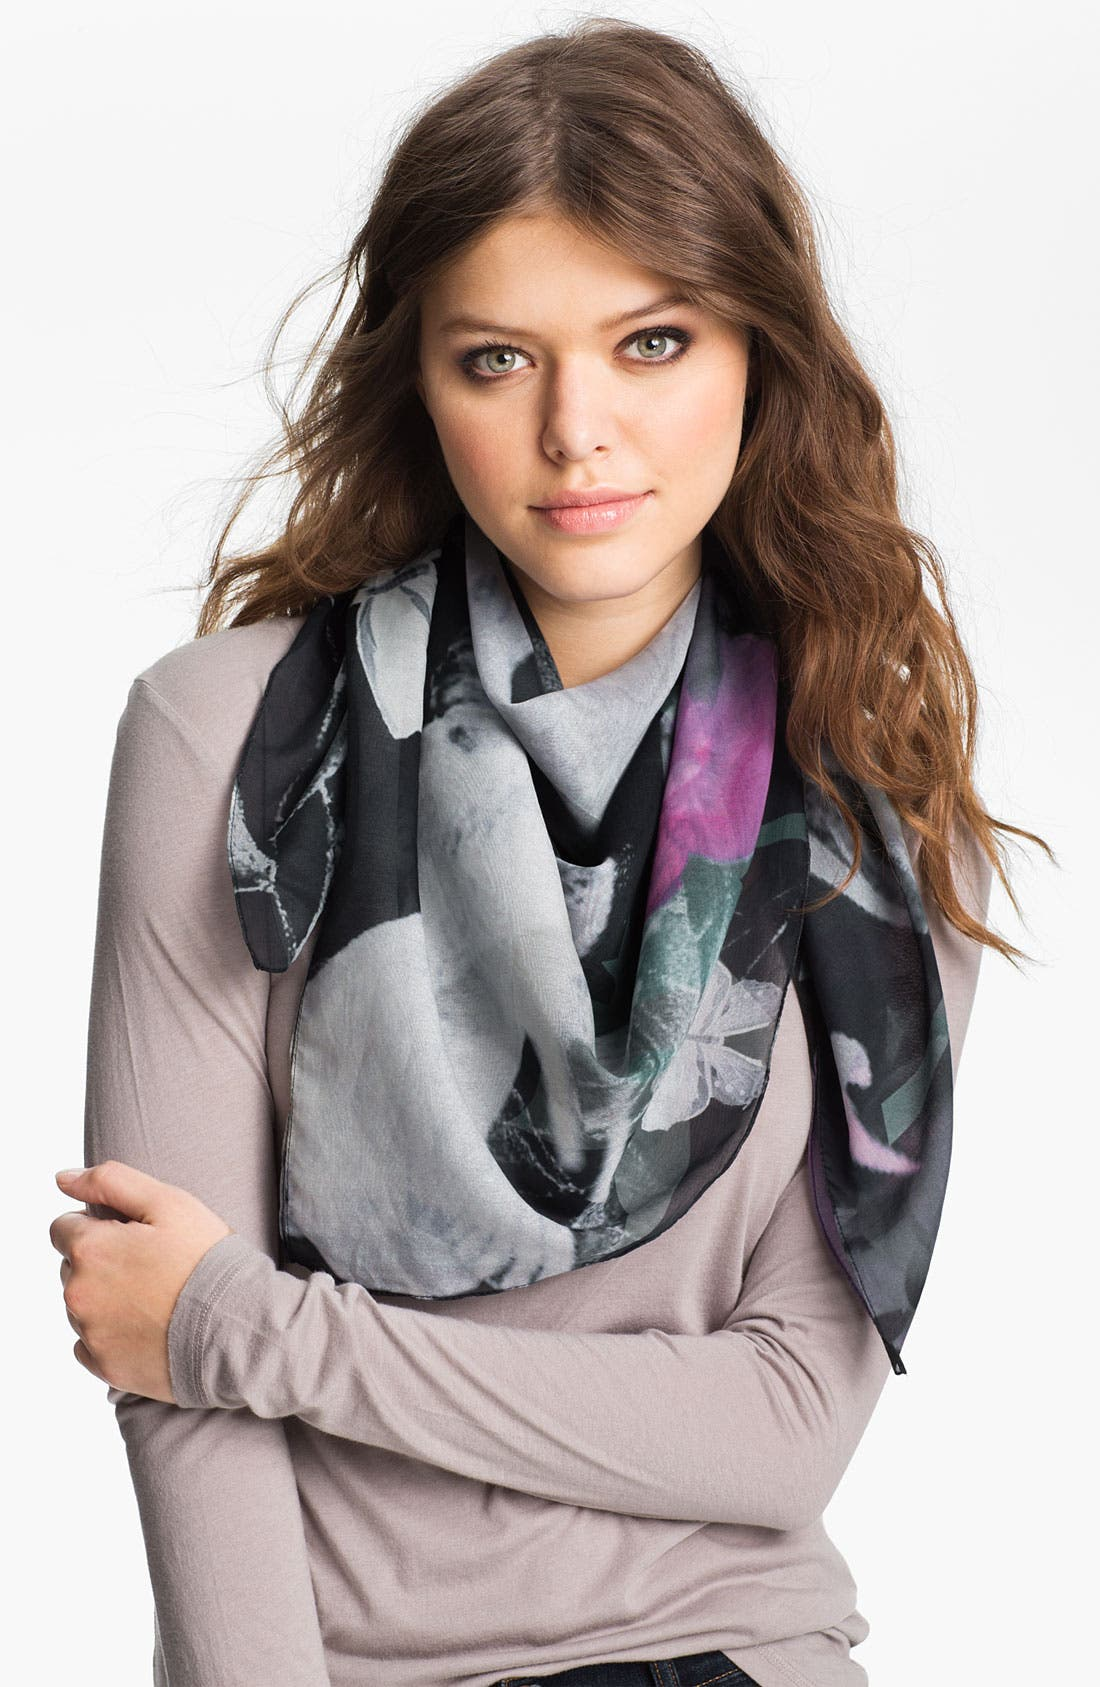 Alternate Image 1 Selected - Front Row Society 'Meet in the Park at Night' Cotton & Silk Scarf